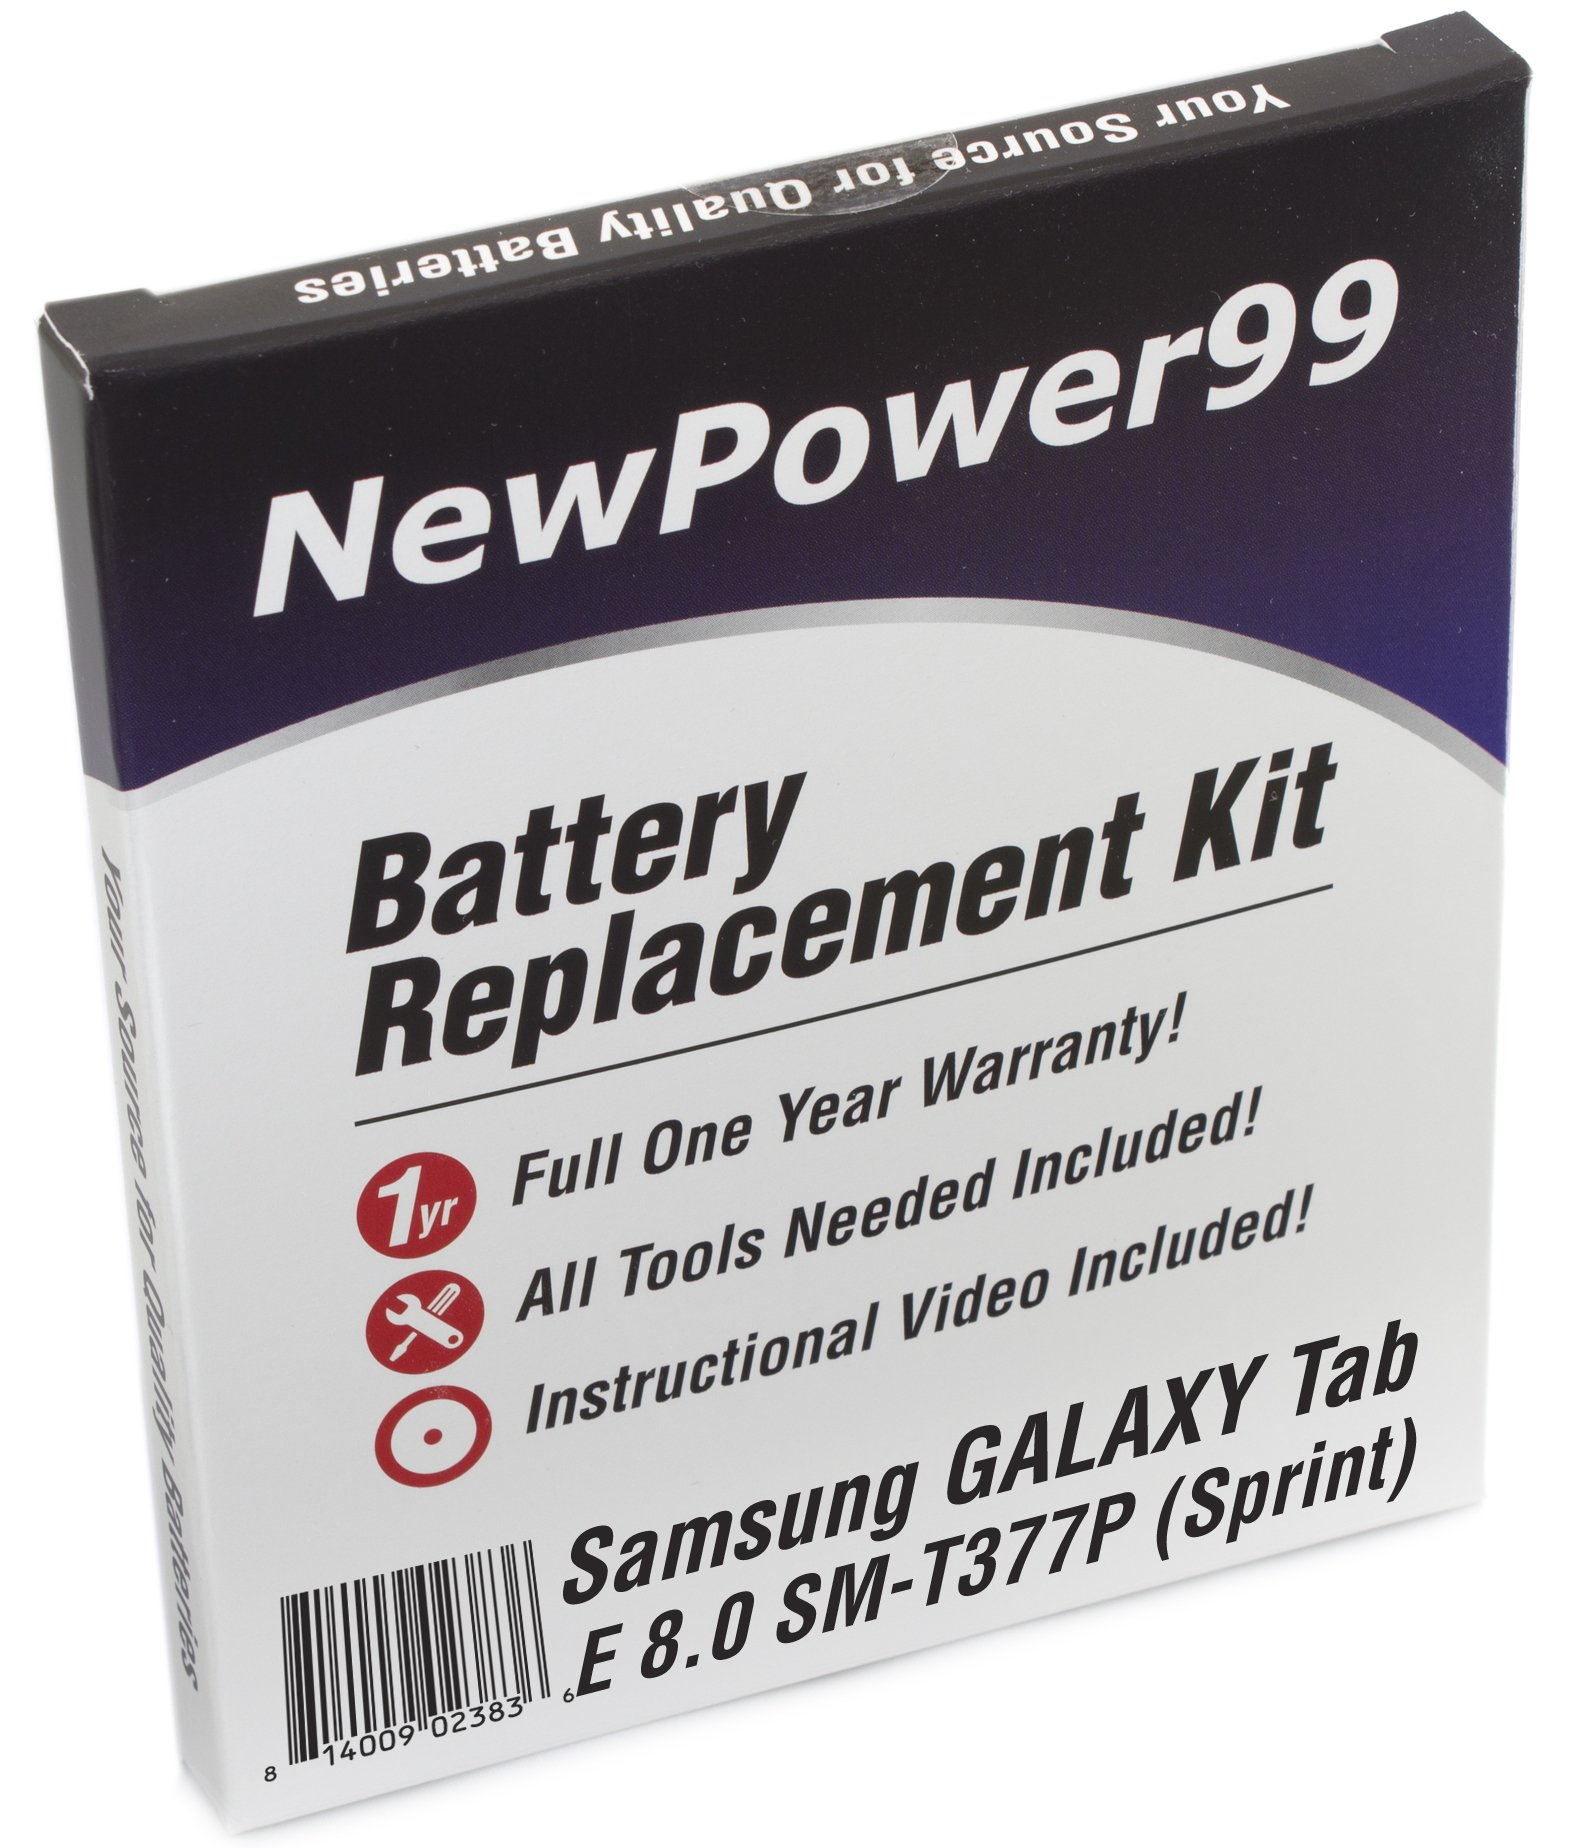 NewPower99 Battery Replacement Kit with Battery, Instructions and Tools for Samsung Galaxy Tab E 8.0 SM-T377P (Sprint)